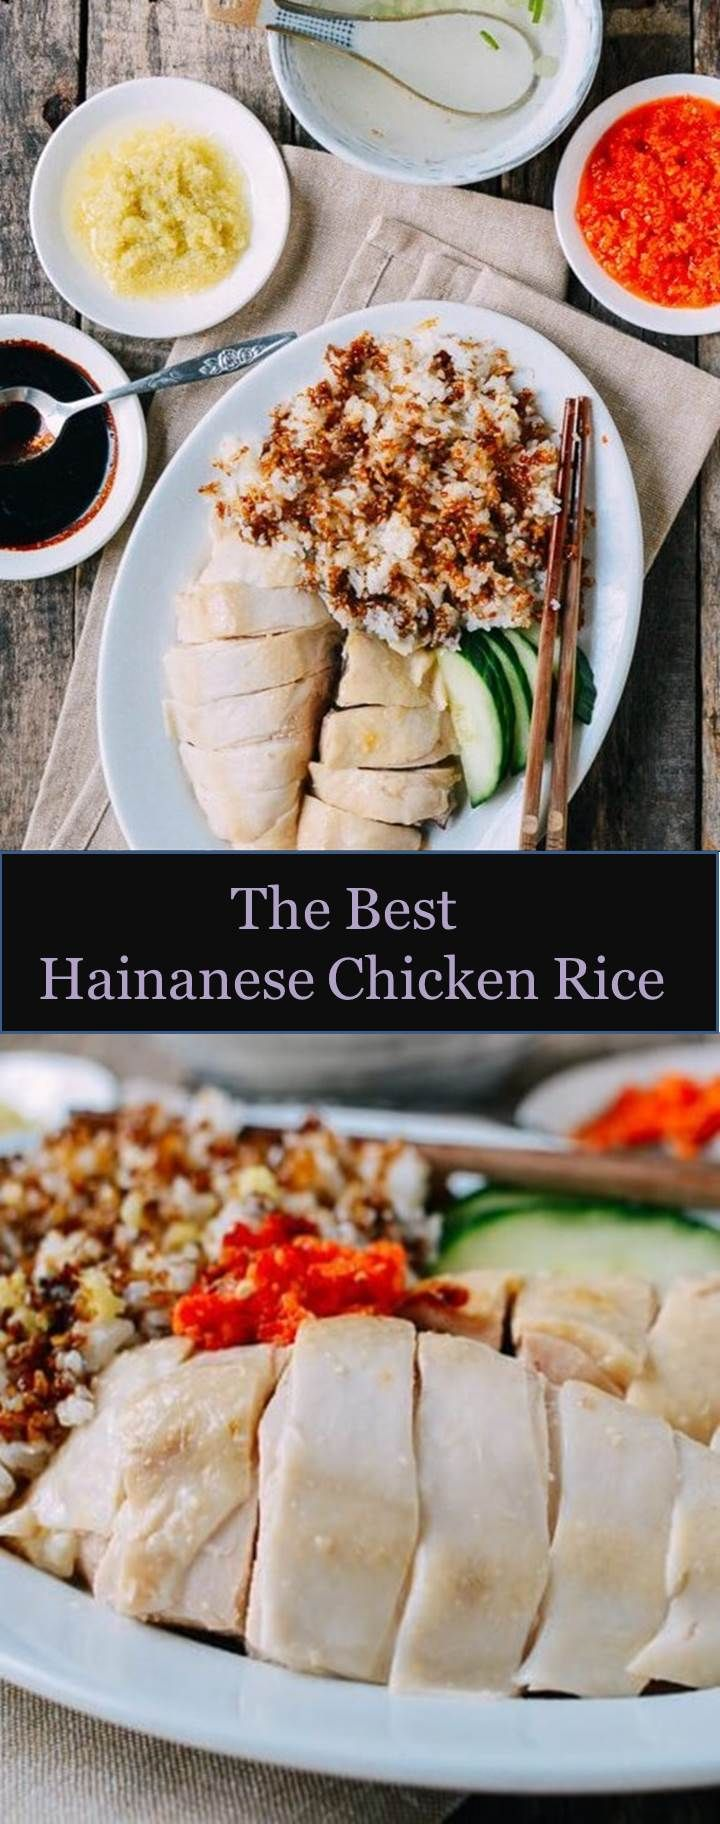 Hainanese chicken rice with images hainanese